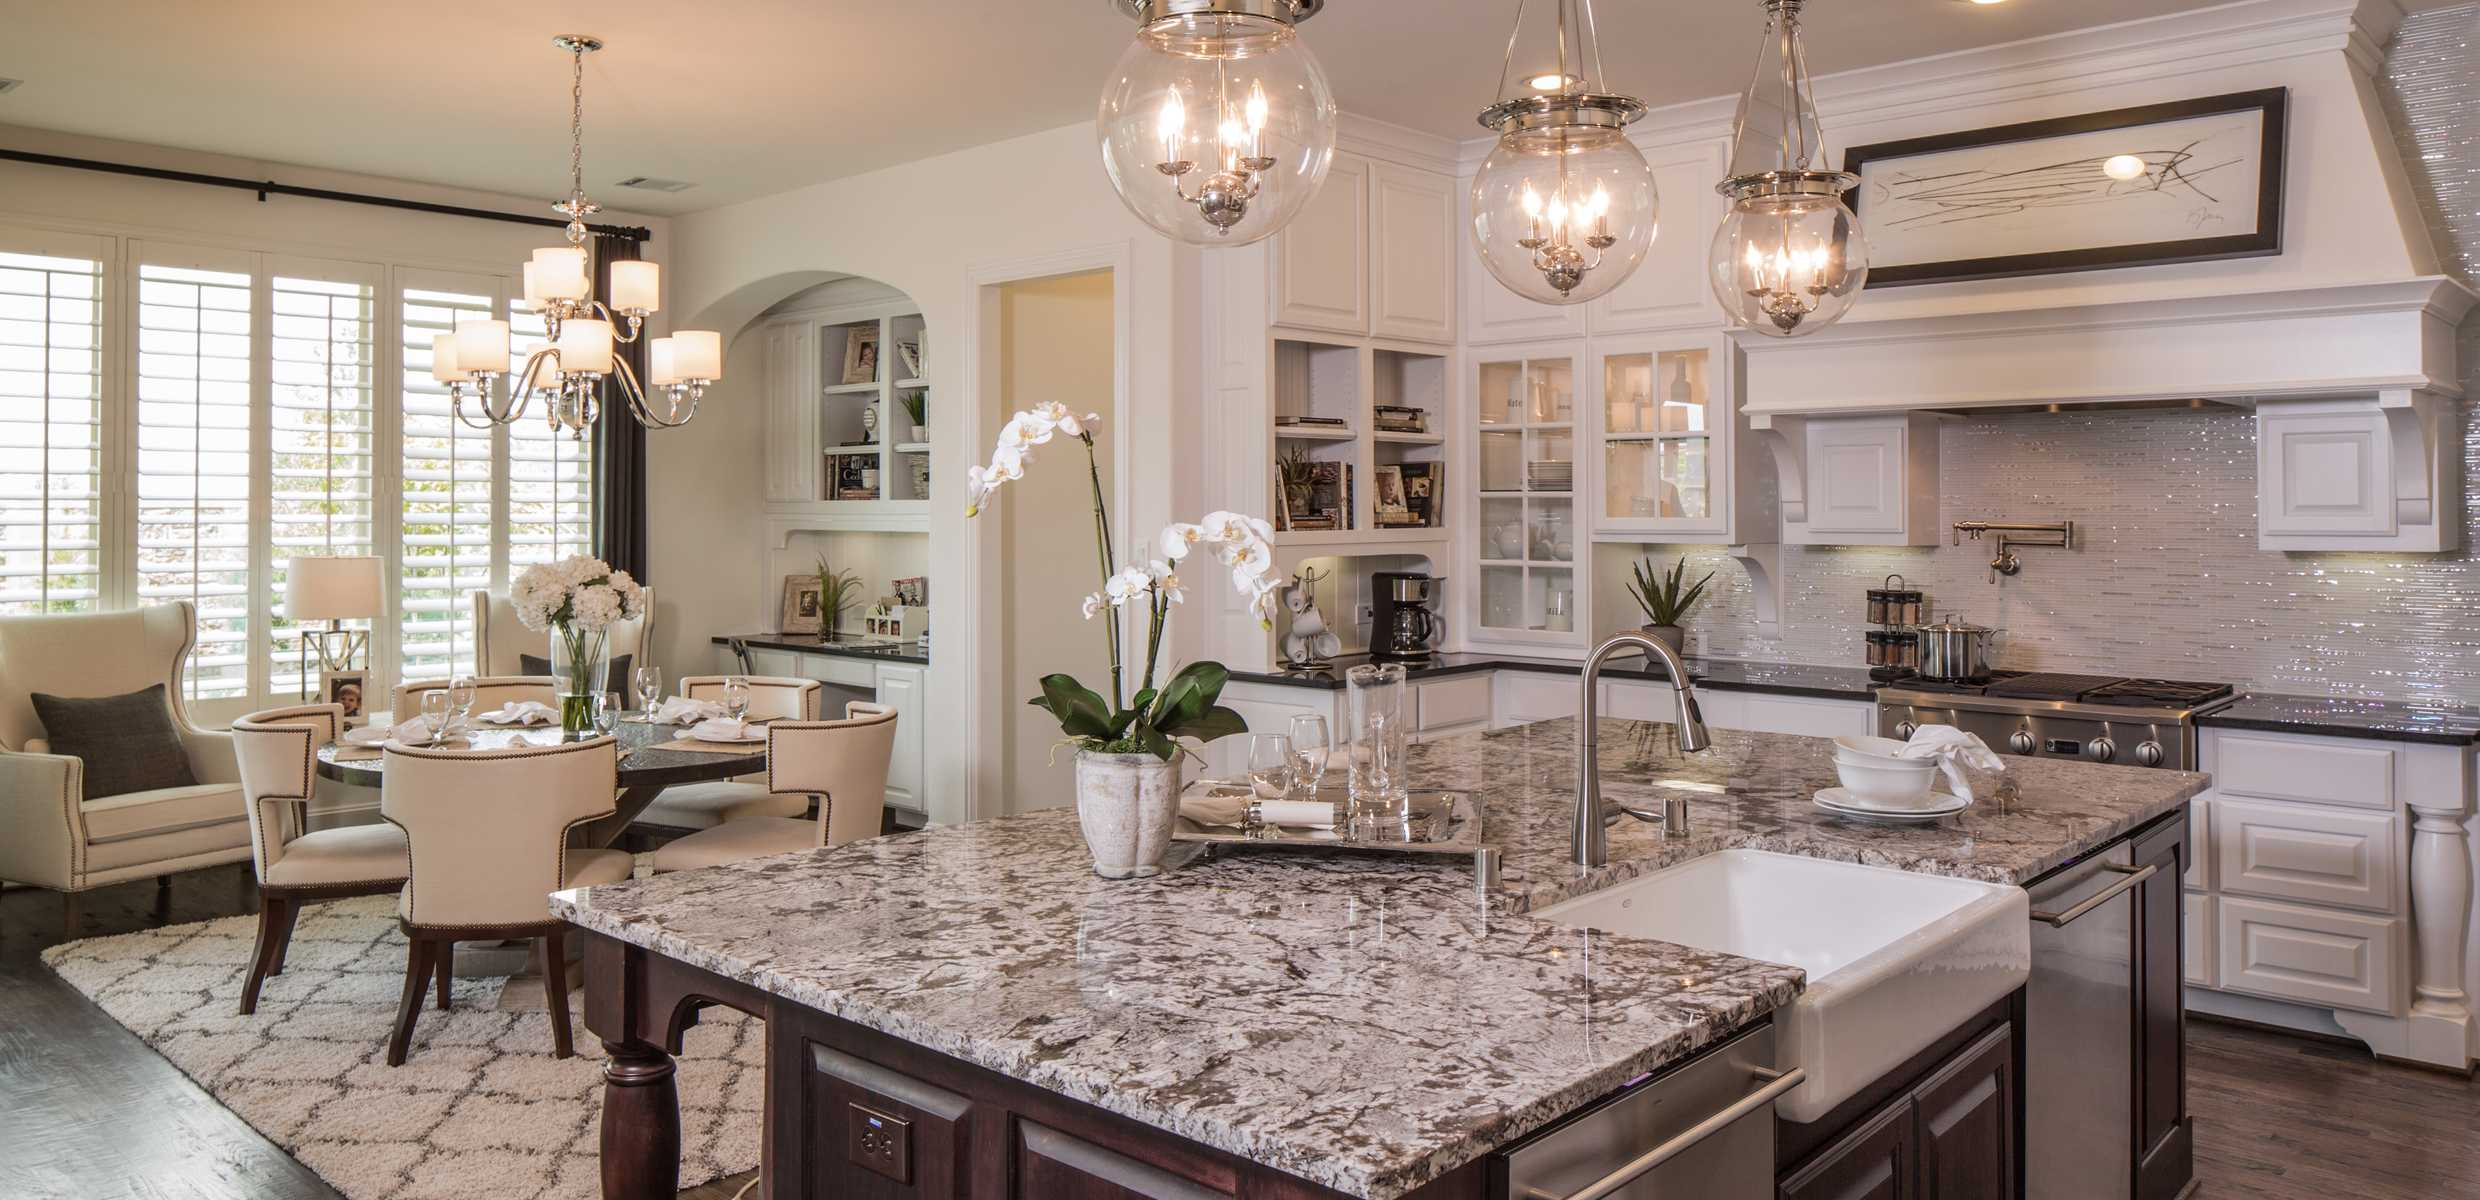 GOURMET KITCHEN | CROSS CREEK RANCH | FULSHEAR, TX